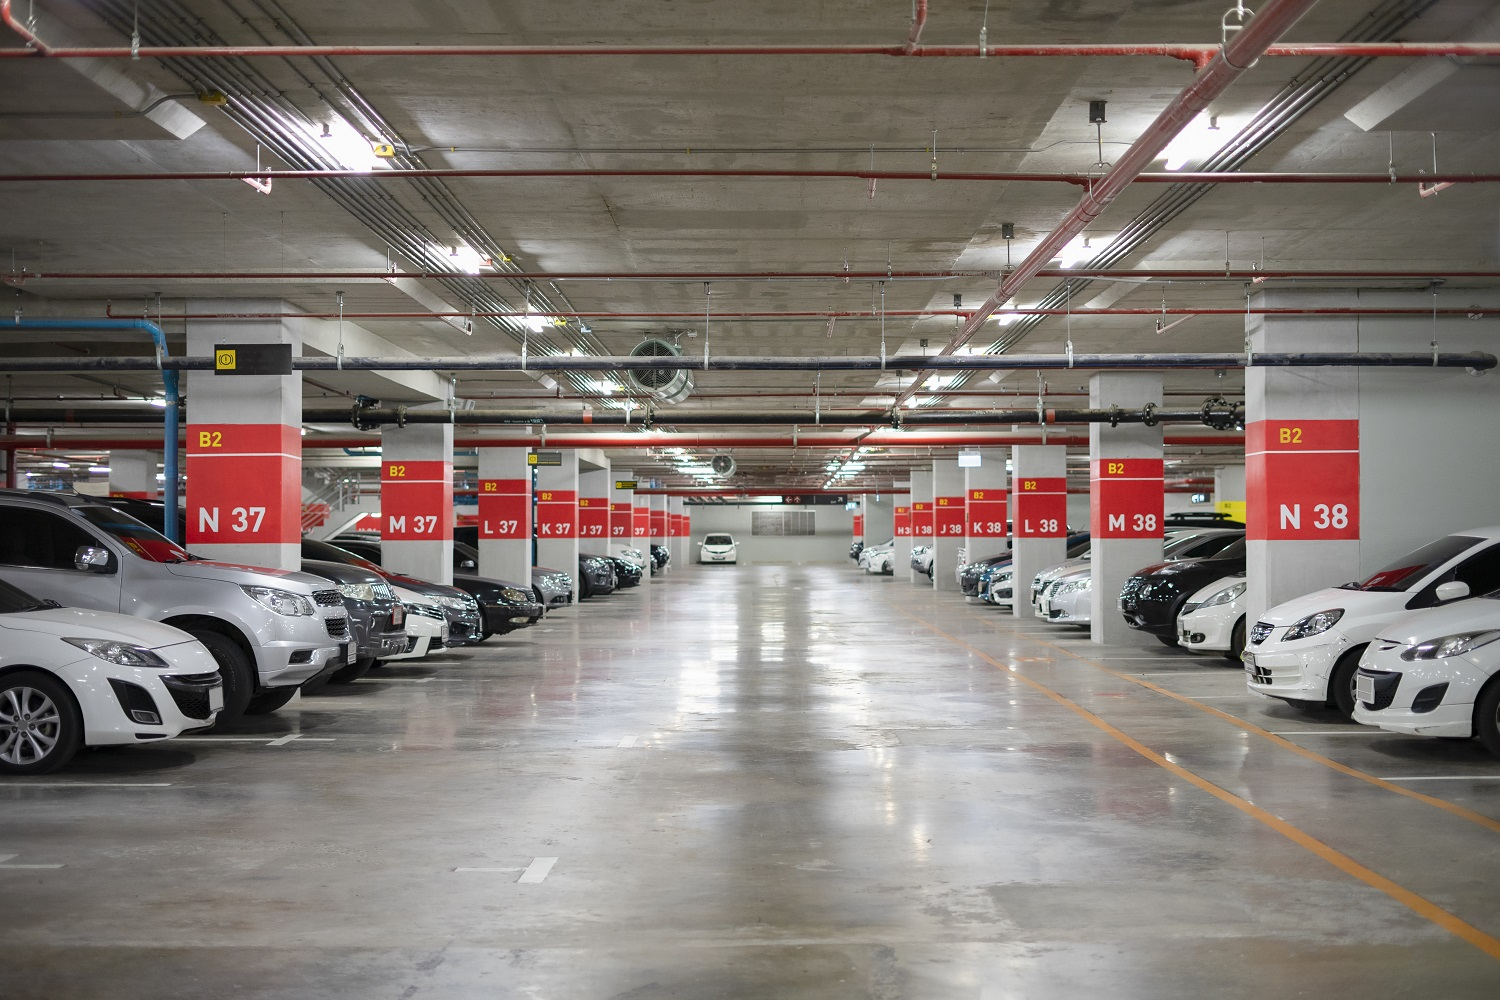 Vehicle Fire Hazards In Parking Garages and Vehicle Carriers